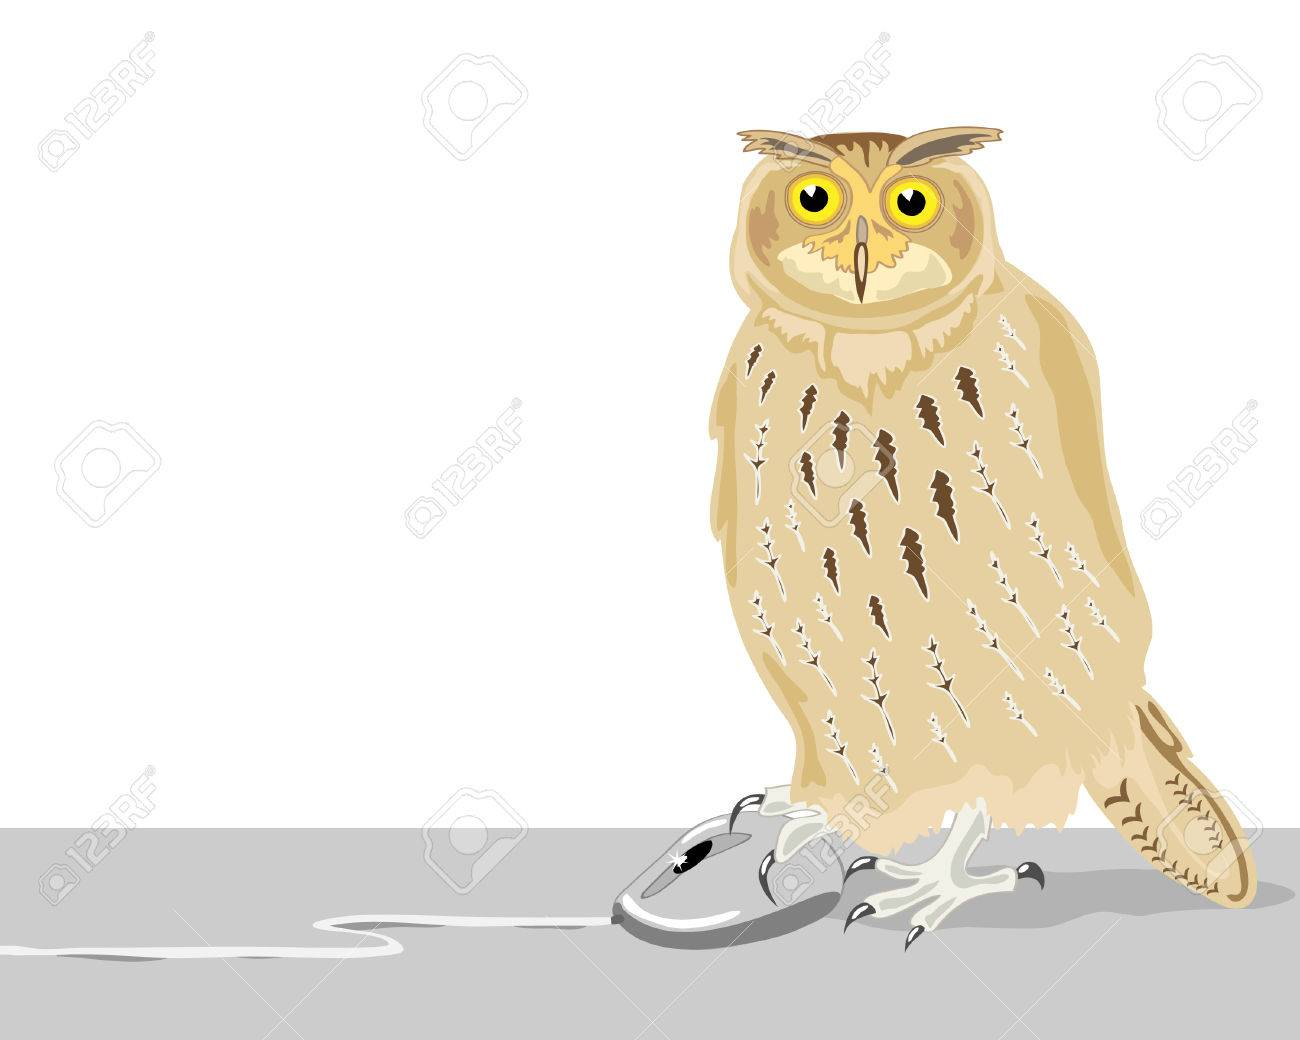 a hand drawn illustration of an owl with a computer mouse on a white background Stock Vector - 7111615